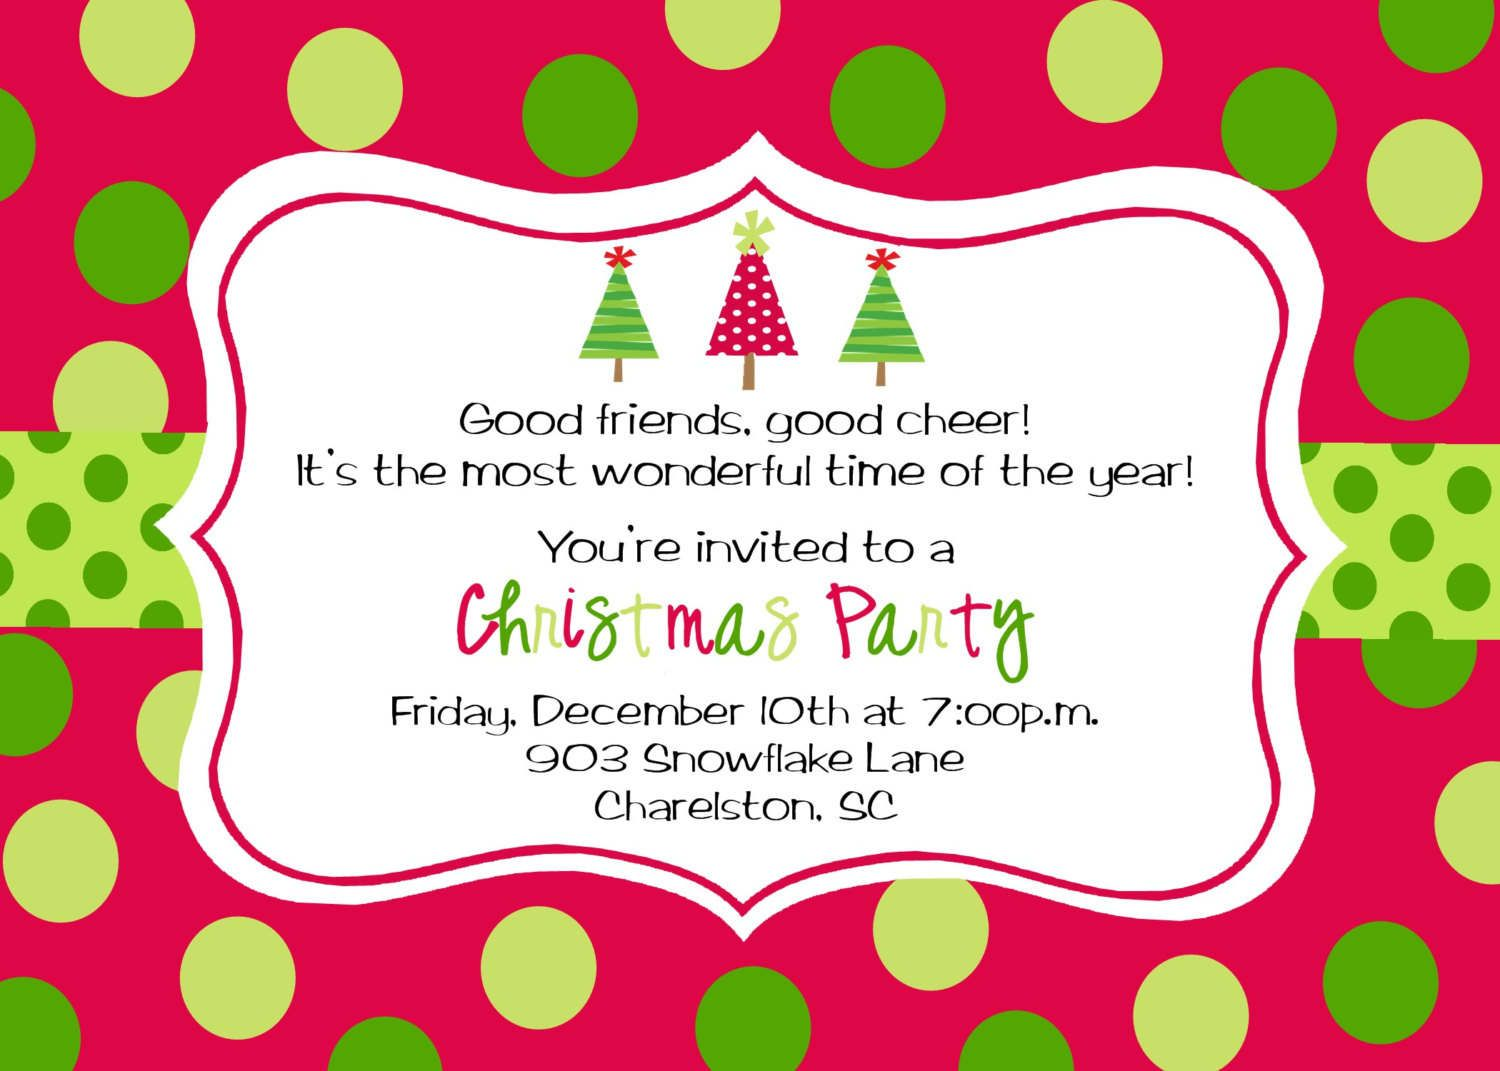 Colorful Christmas Holiday Party Invitation Template With Polkadot  Background Style  Christmas Dinner Invitation Template Free